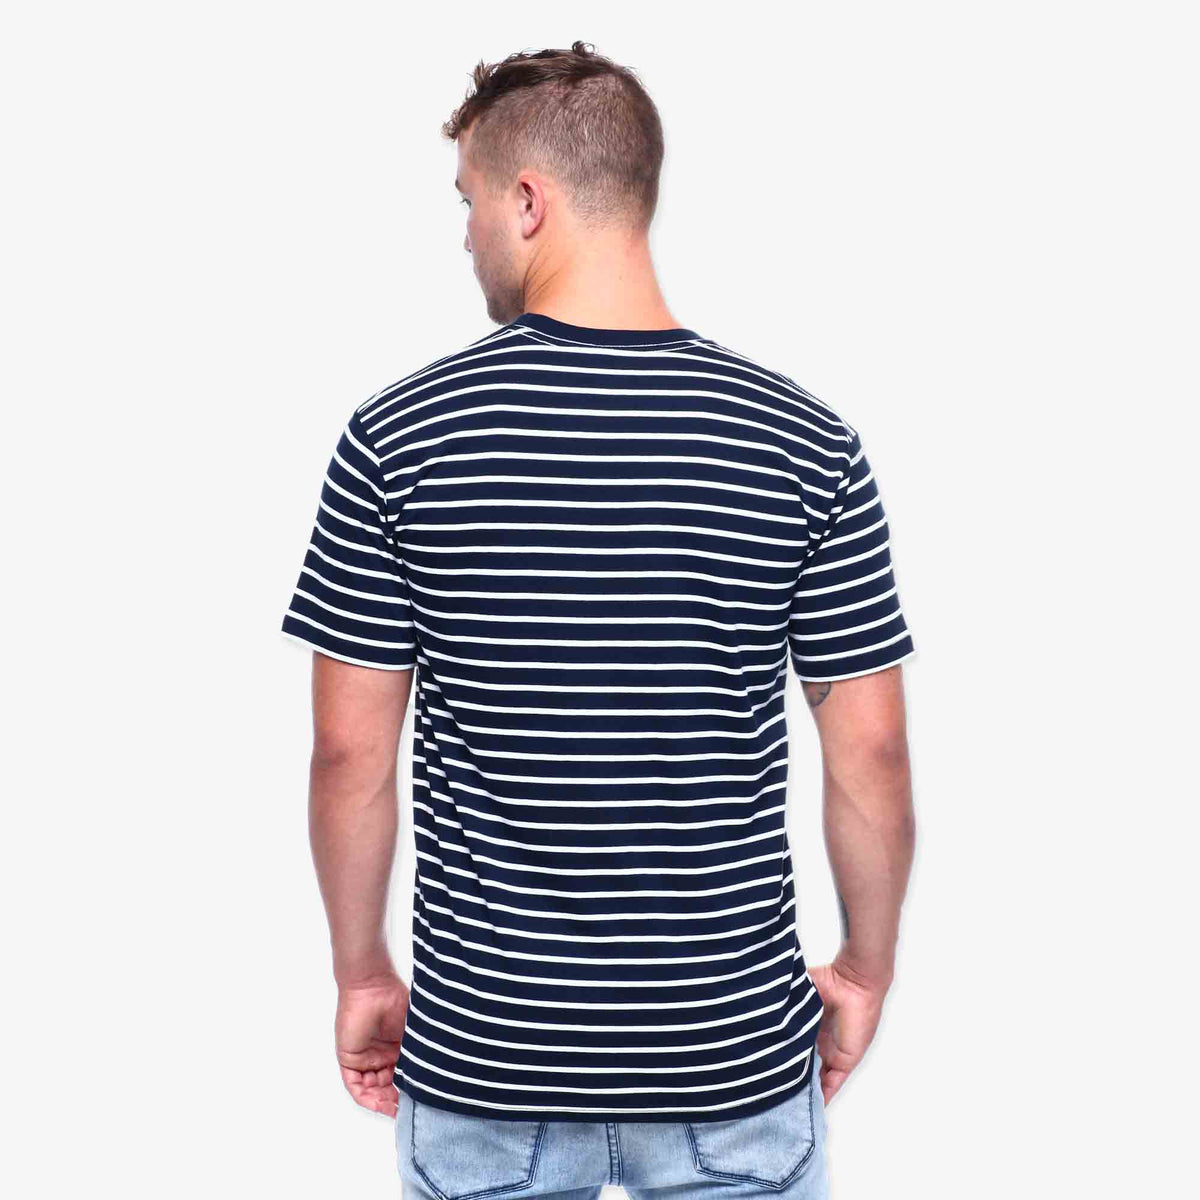 Mariner Stripe Tee - Navy